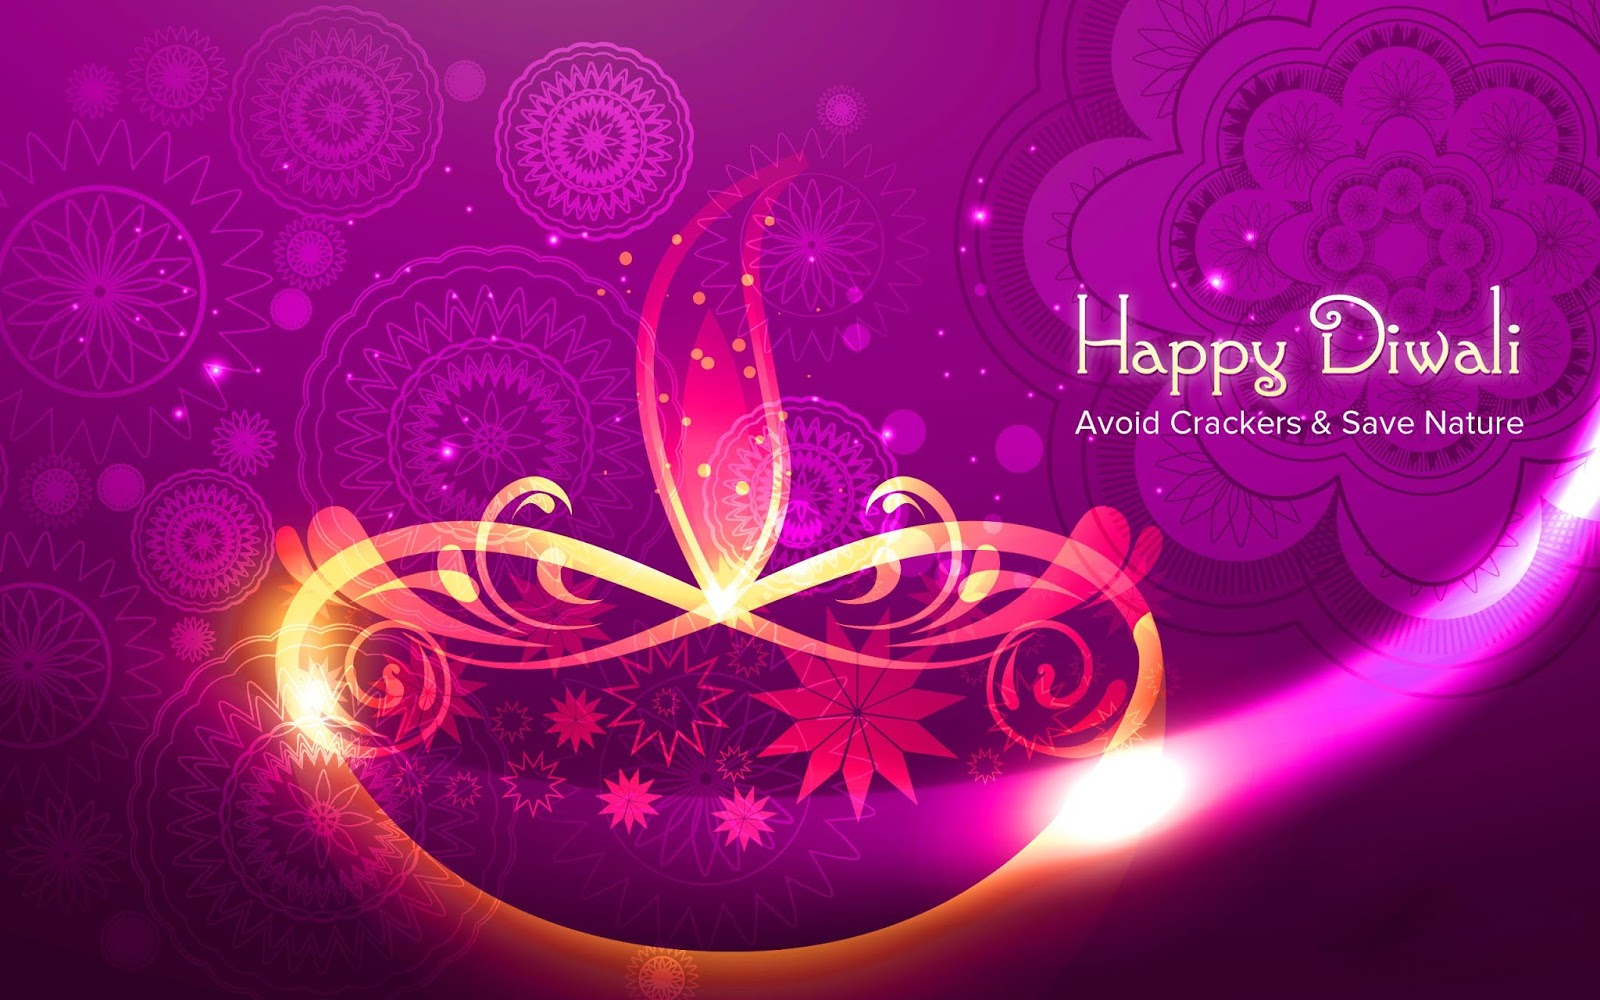 Happy Diwali 2018 Wishes Greetings Messages And Images Happy